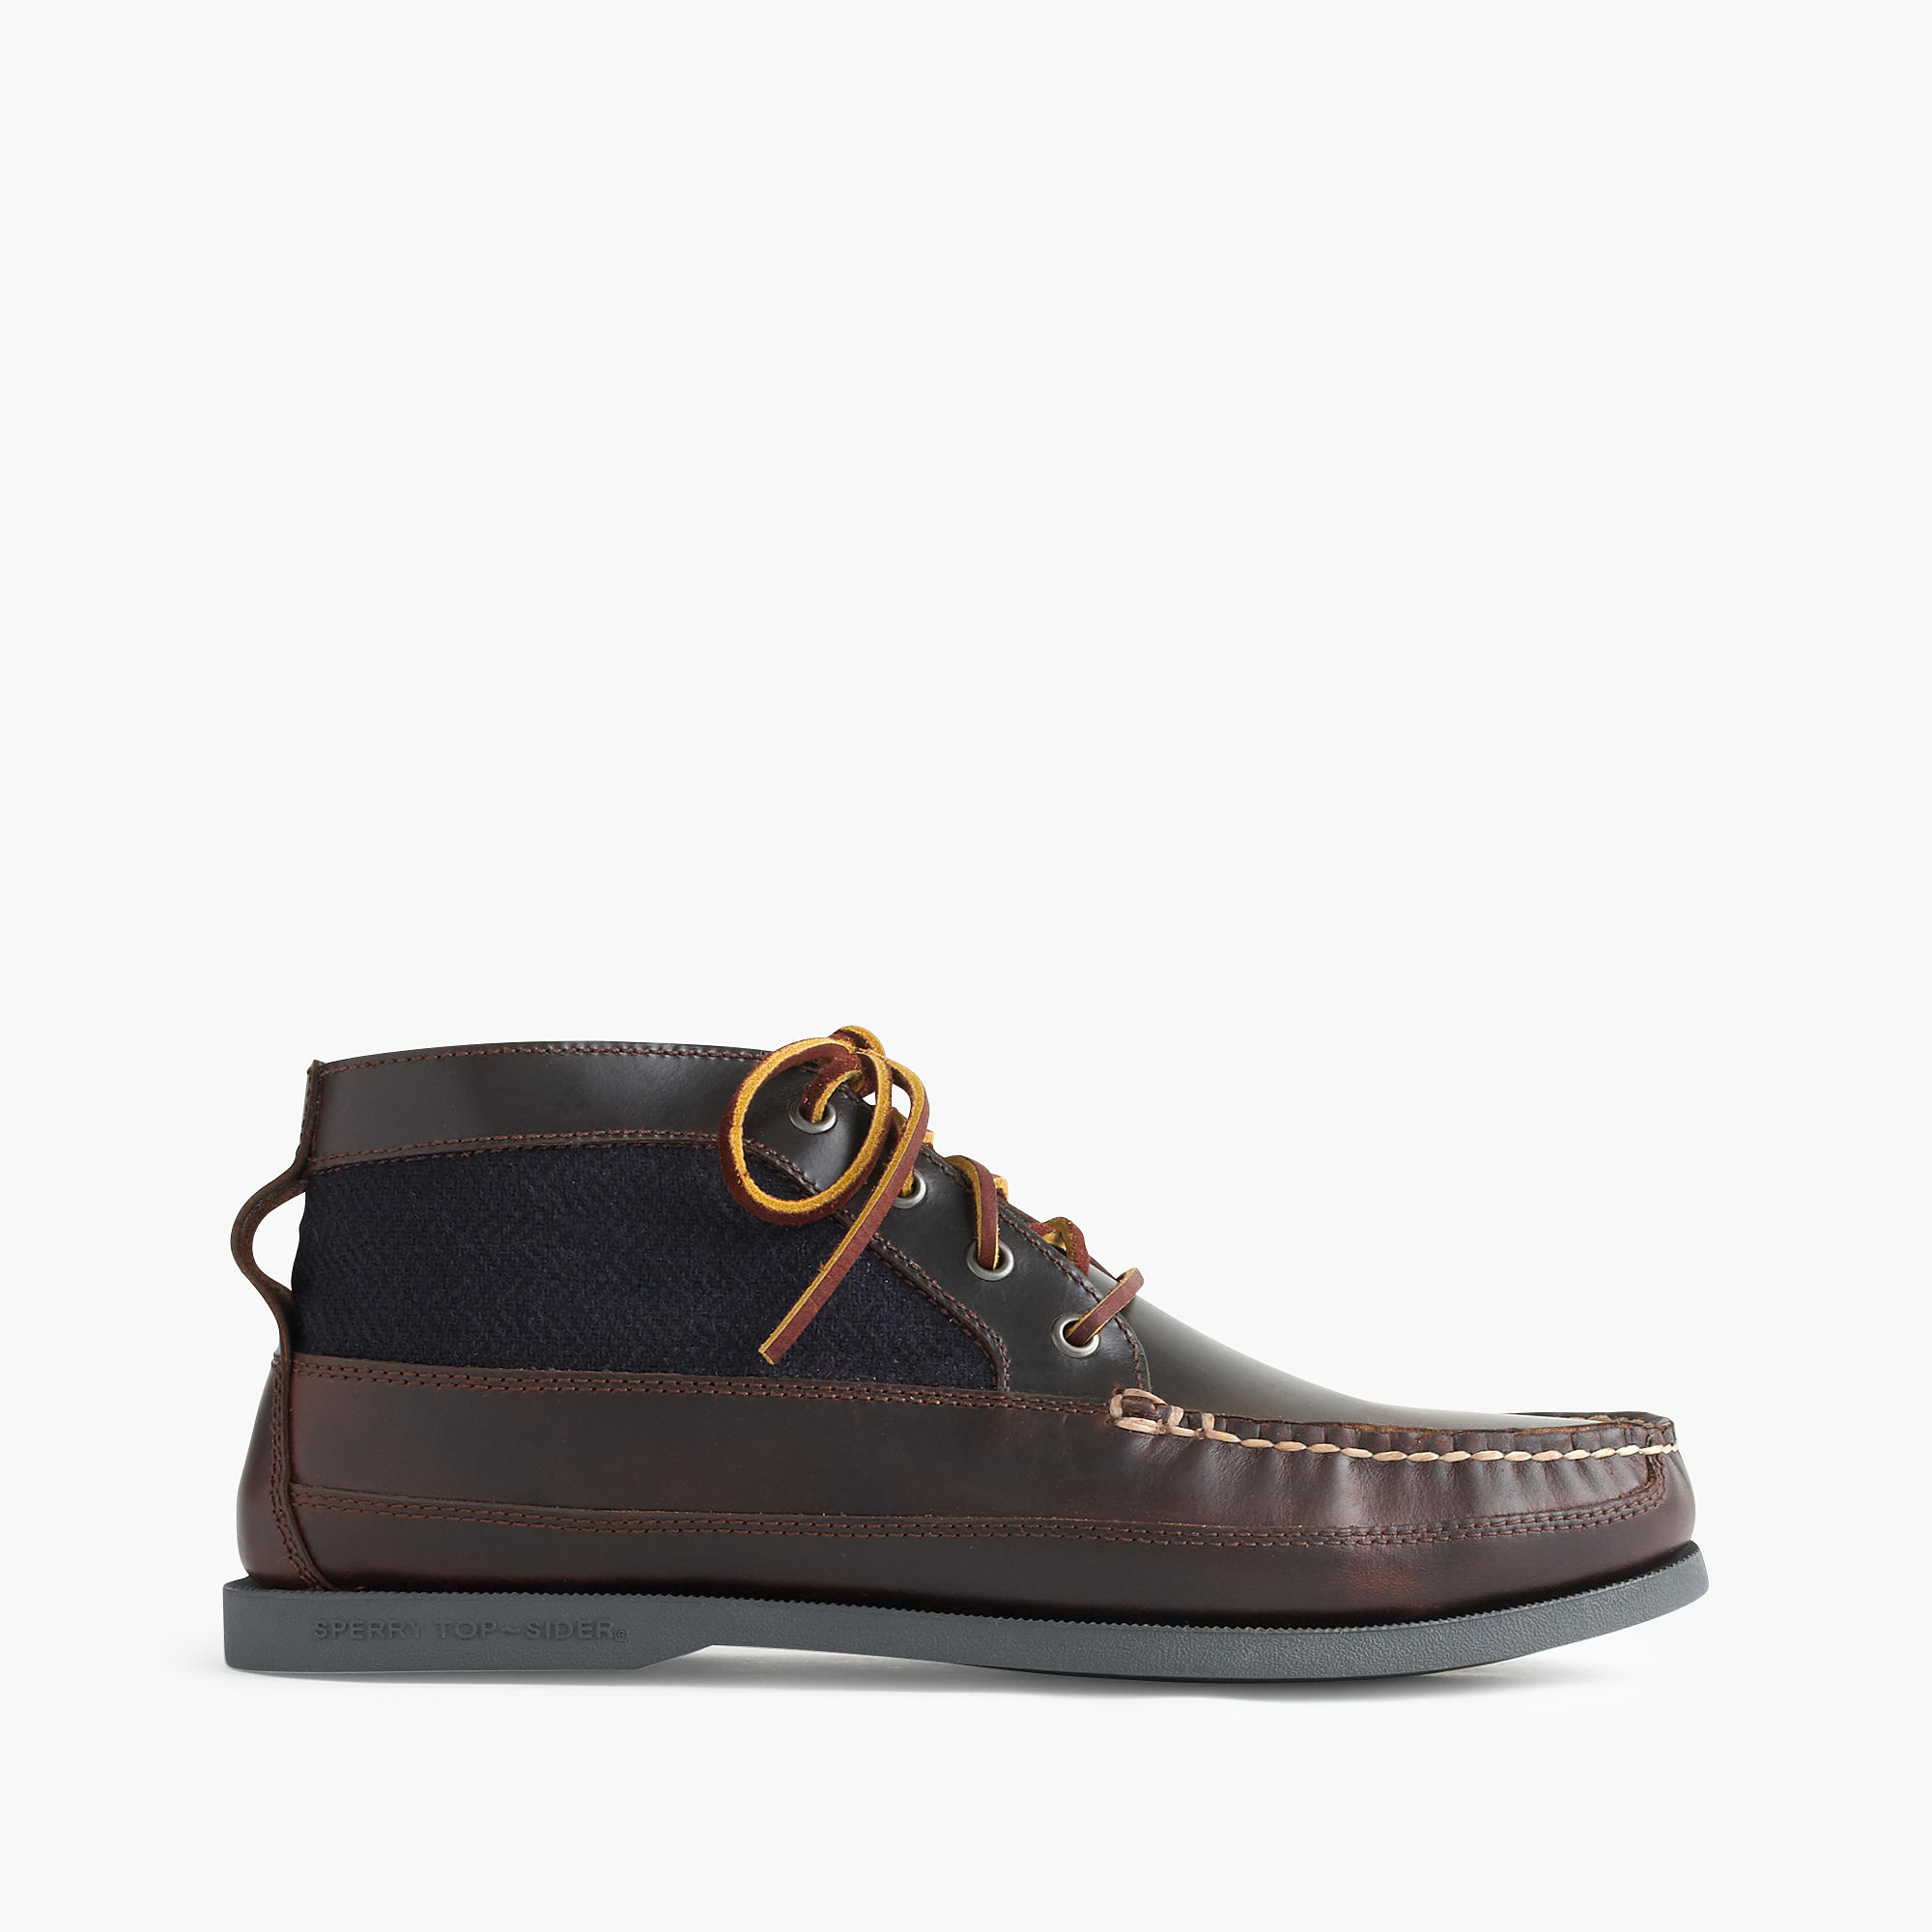 Jew Sperry Wool And Leather Chukka Boots in Brown for